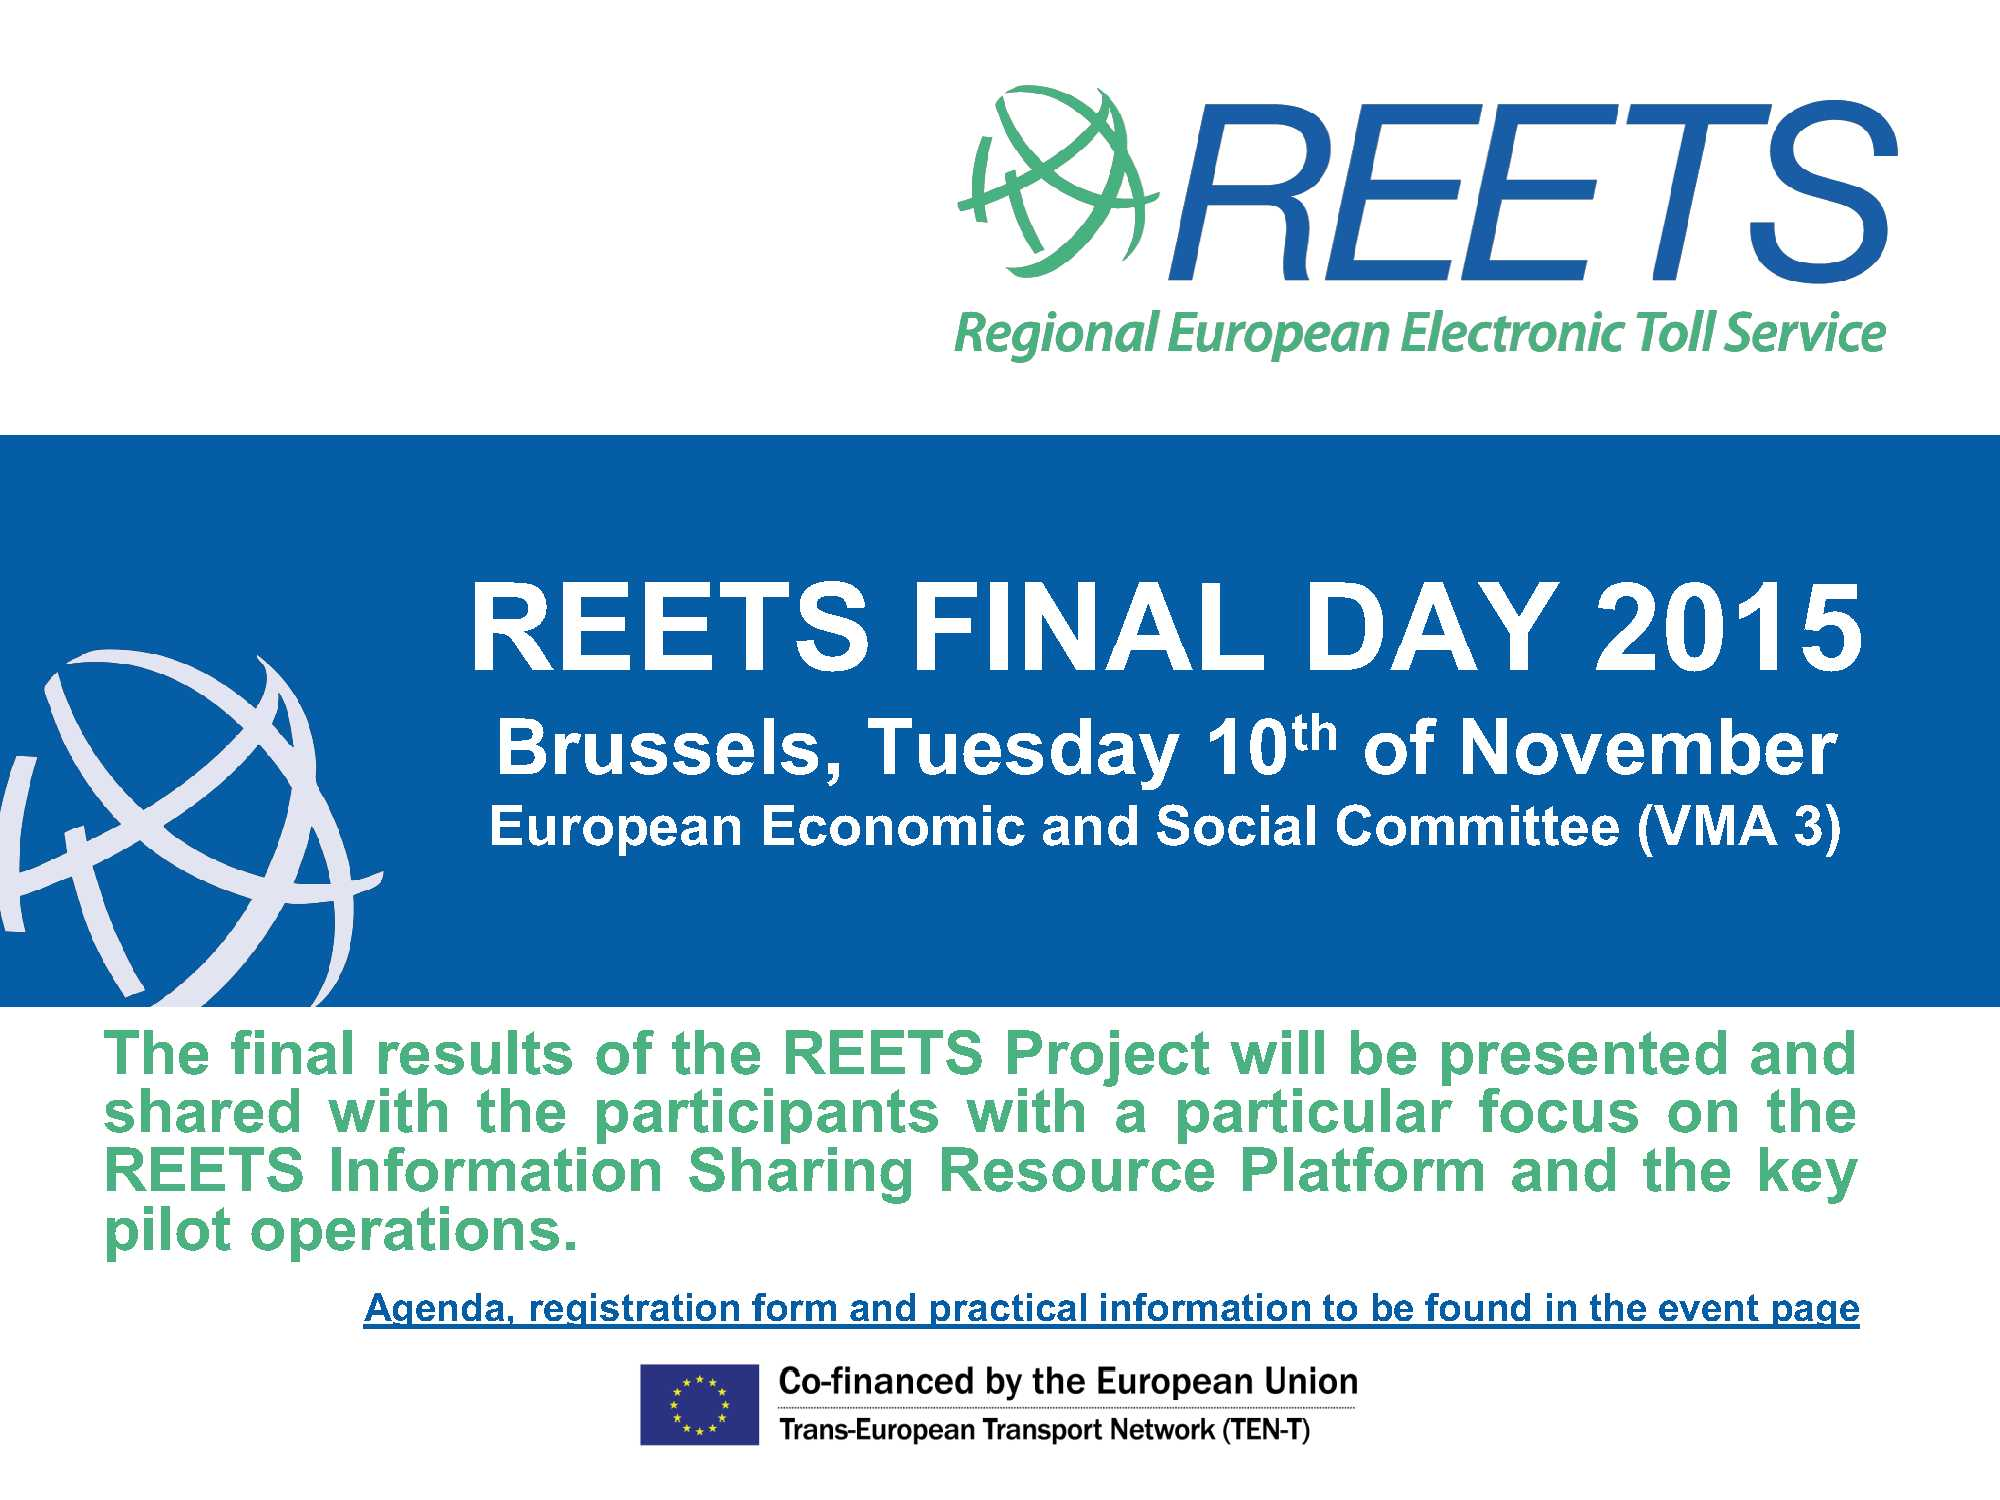 REETS DAY - Final day immage